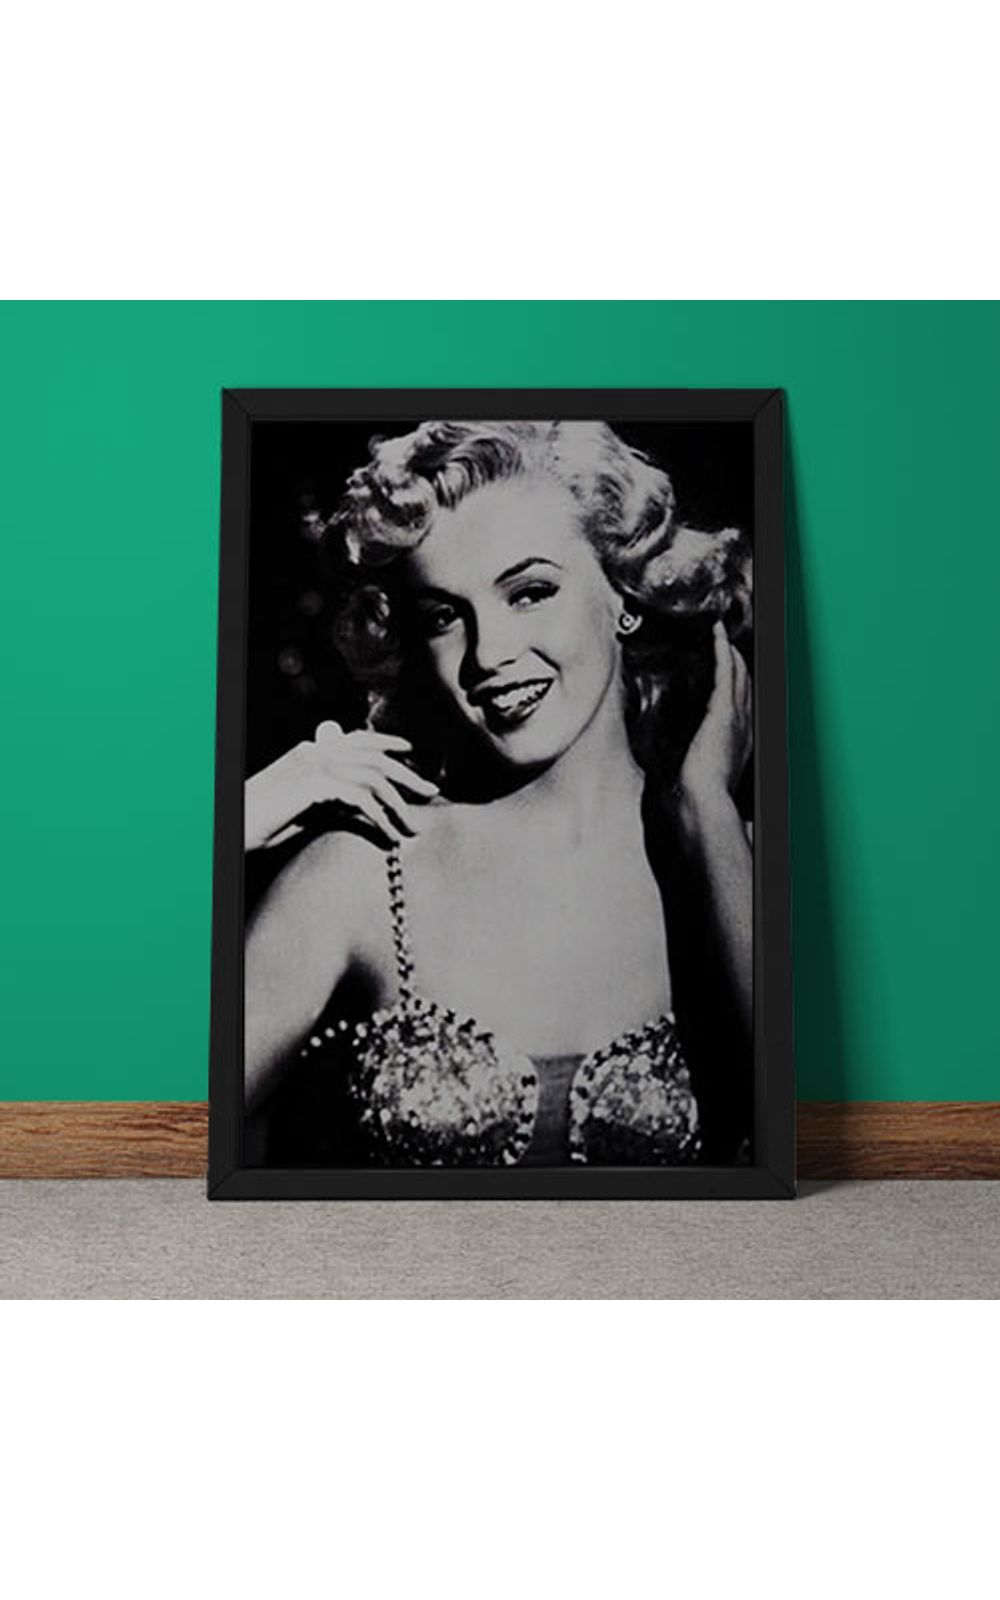 Foto 5 - Quadro Decorativo Marilyn Monroe Retro